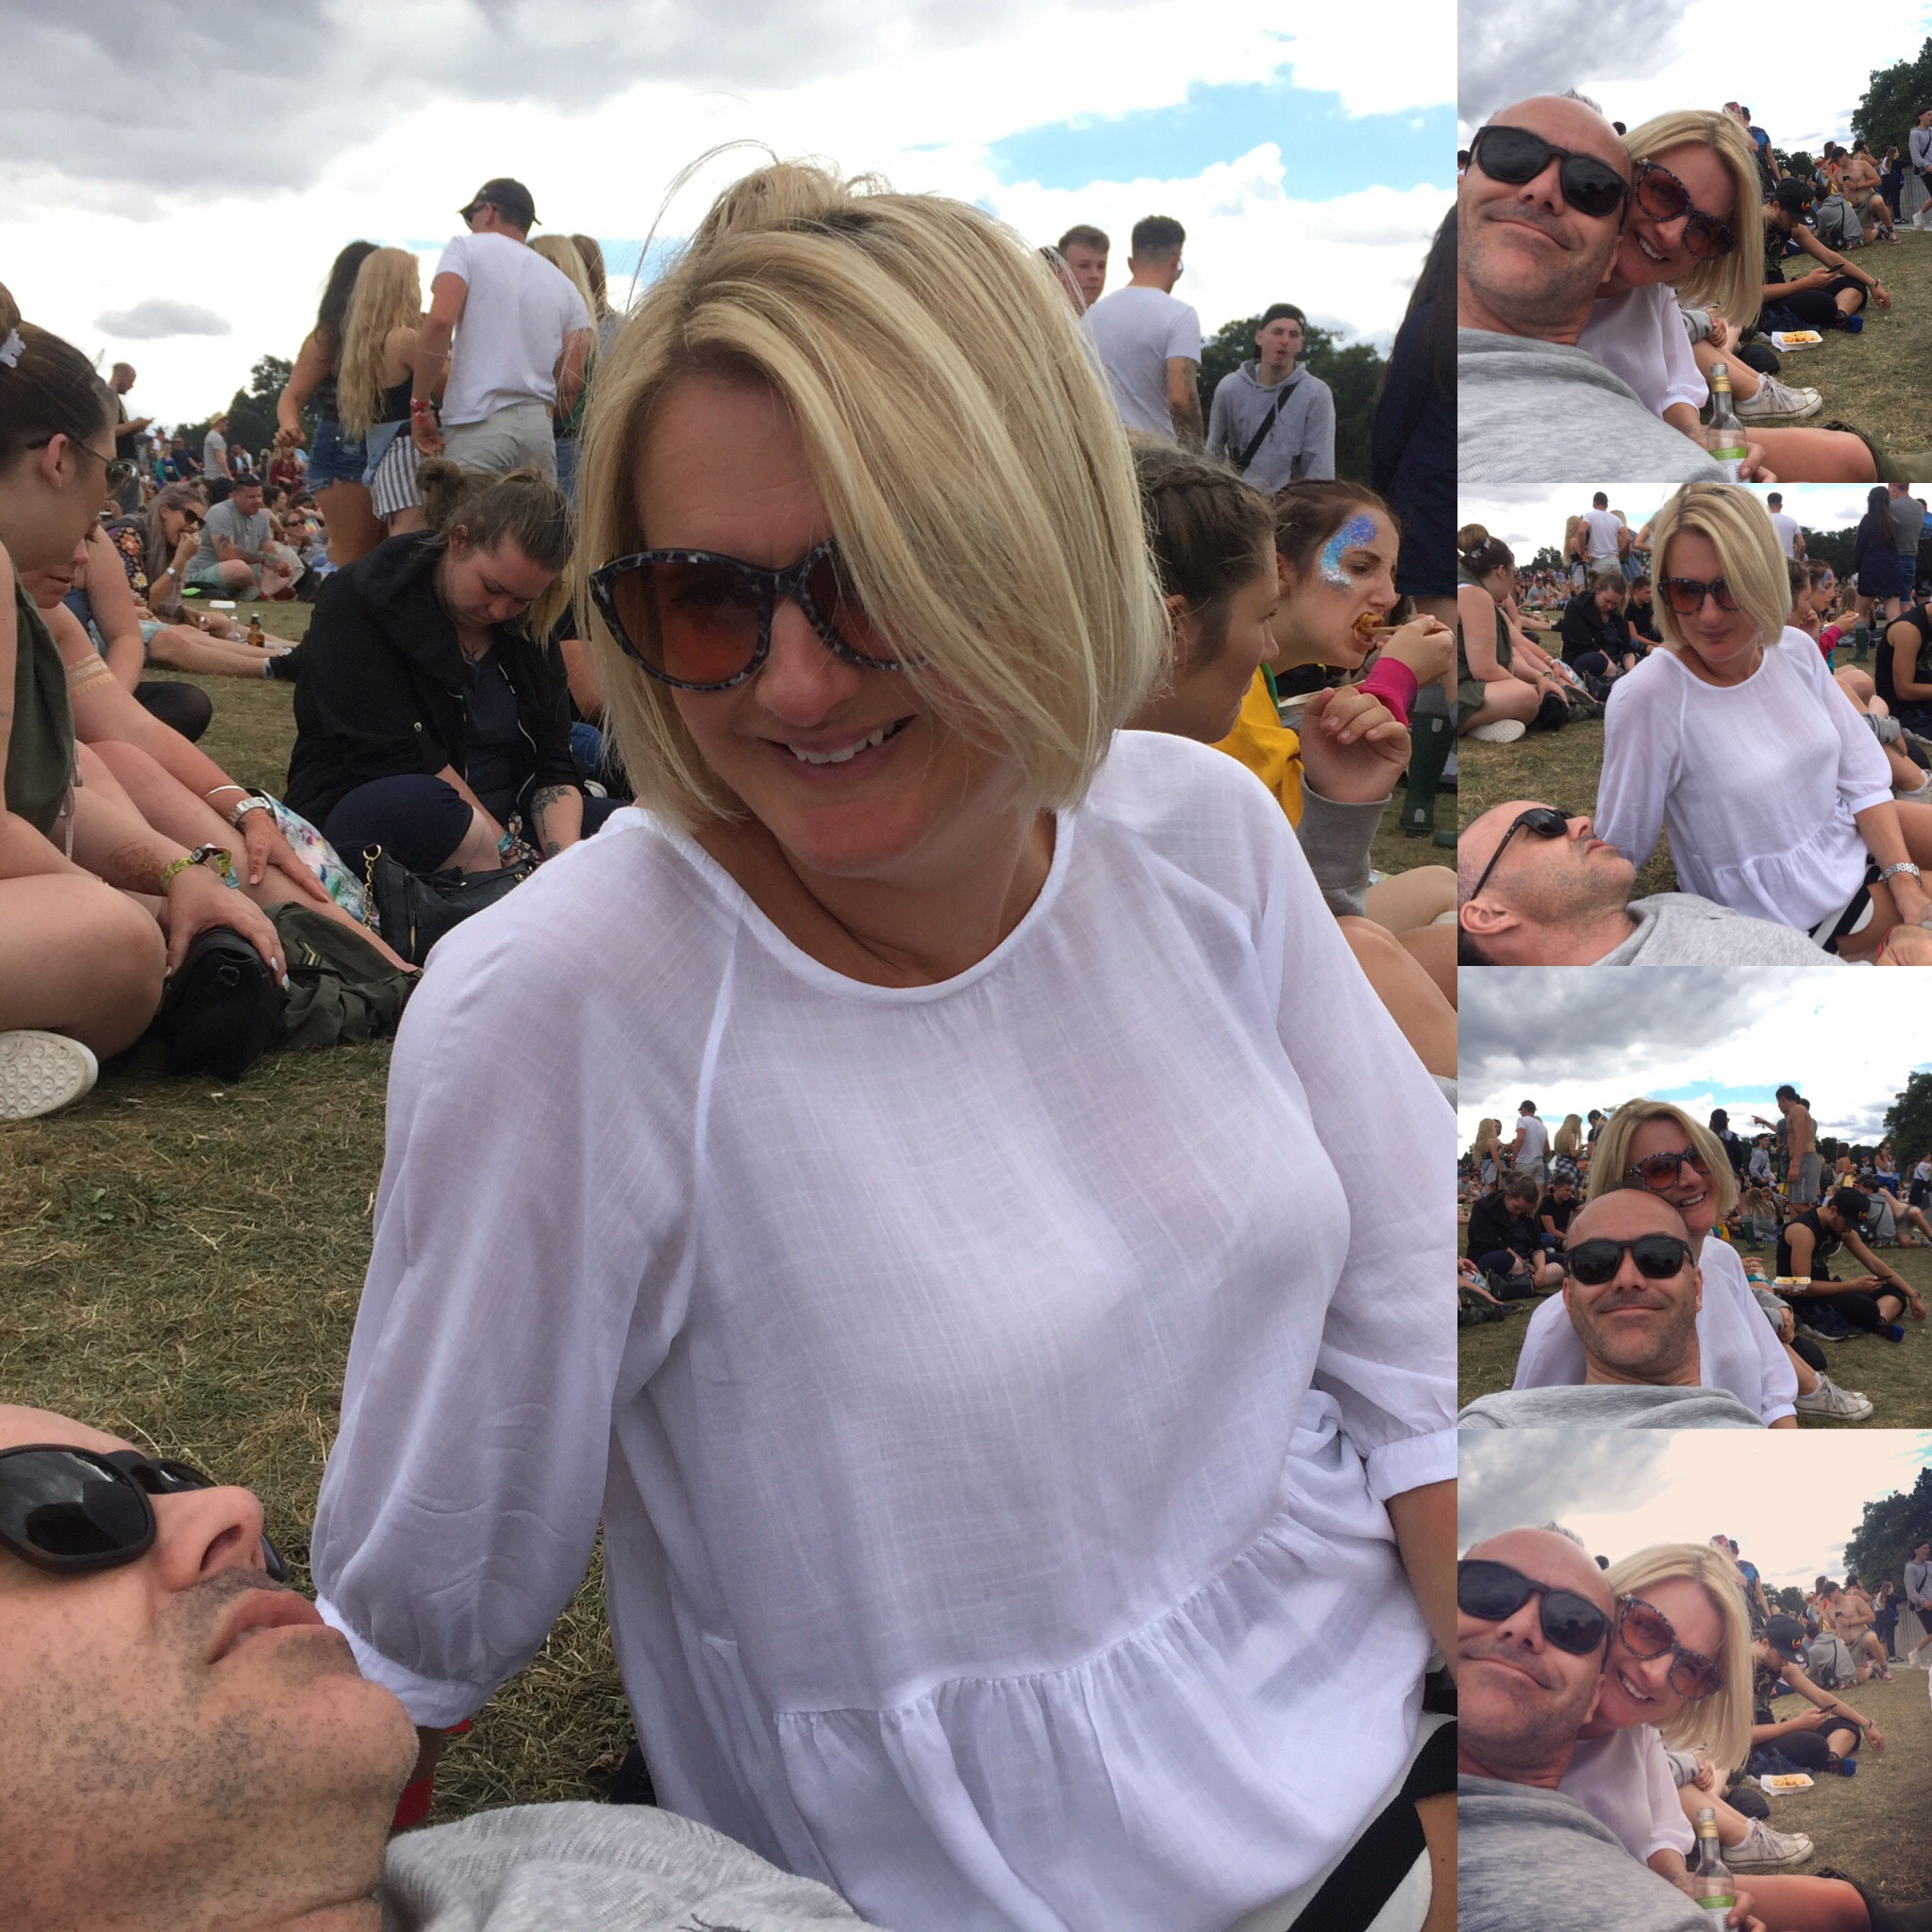 I truly hadn't expected any of it to be chilled out and relaxing,but it was just lovely sitting on the hill with my hubby watching artists I'd never heard of but loving it!